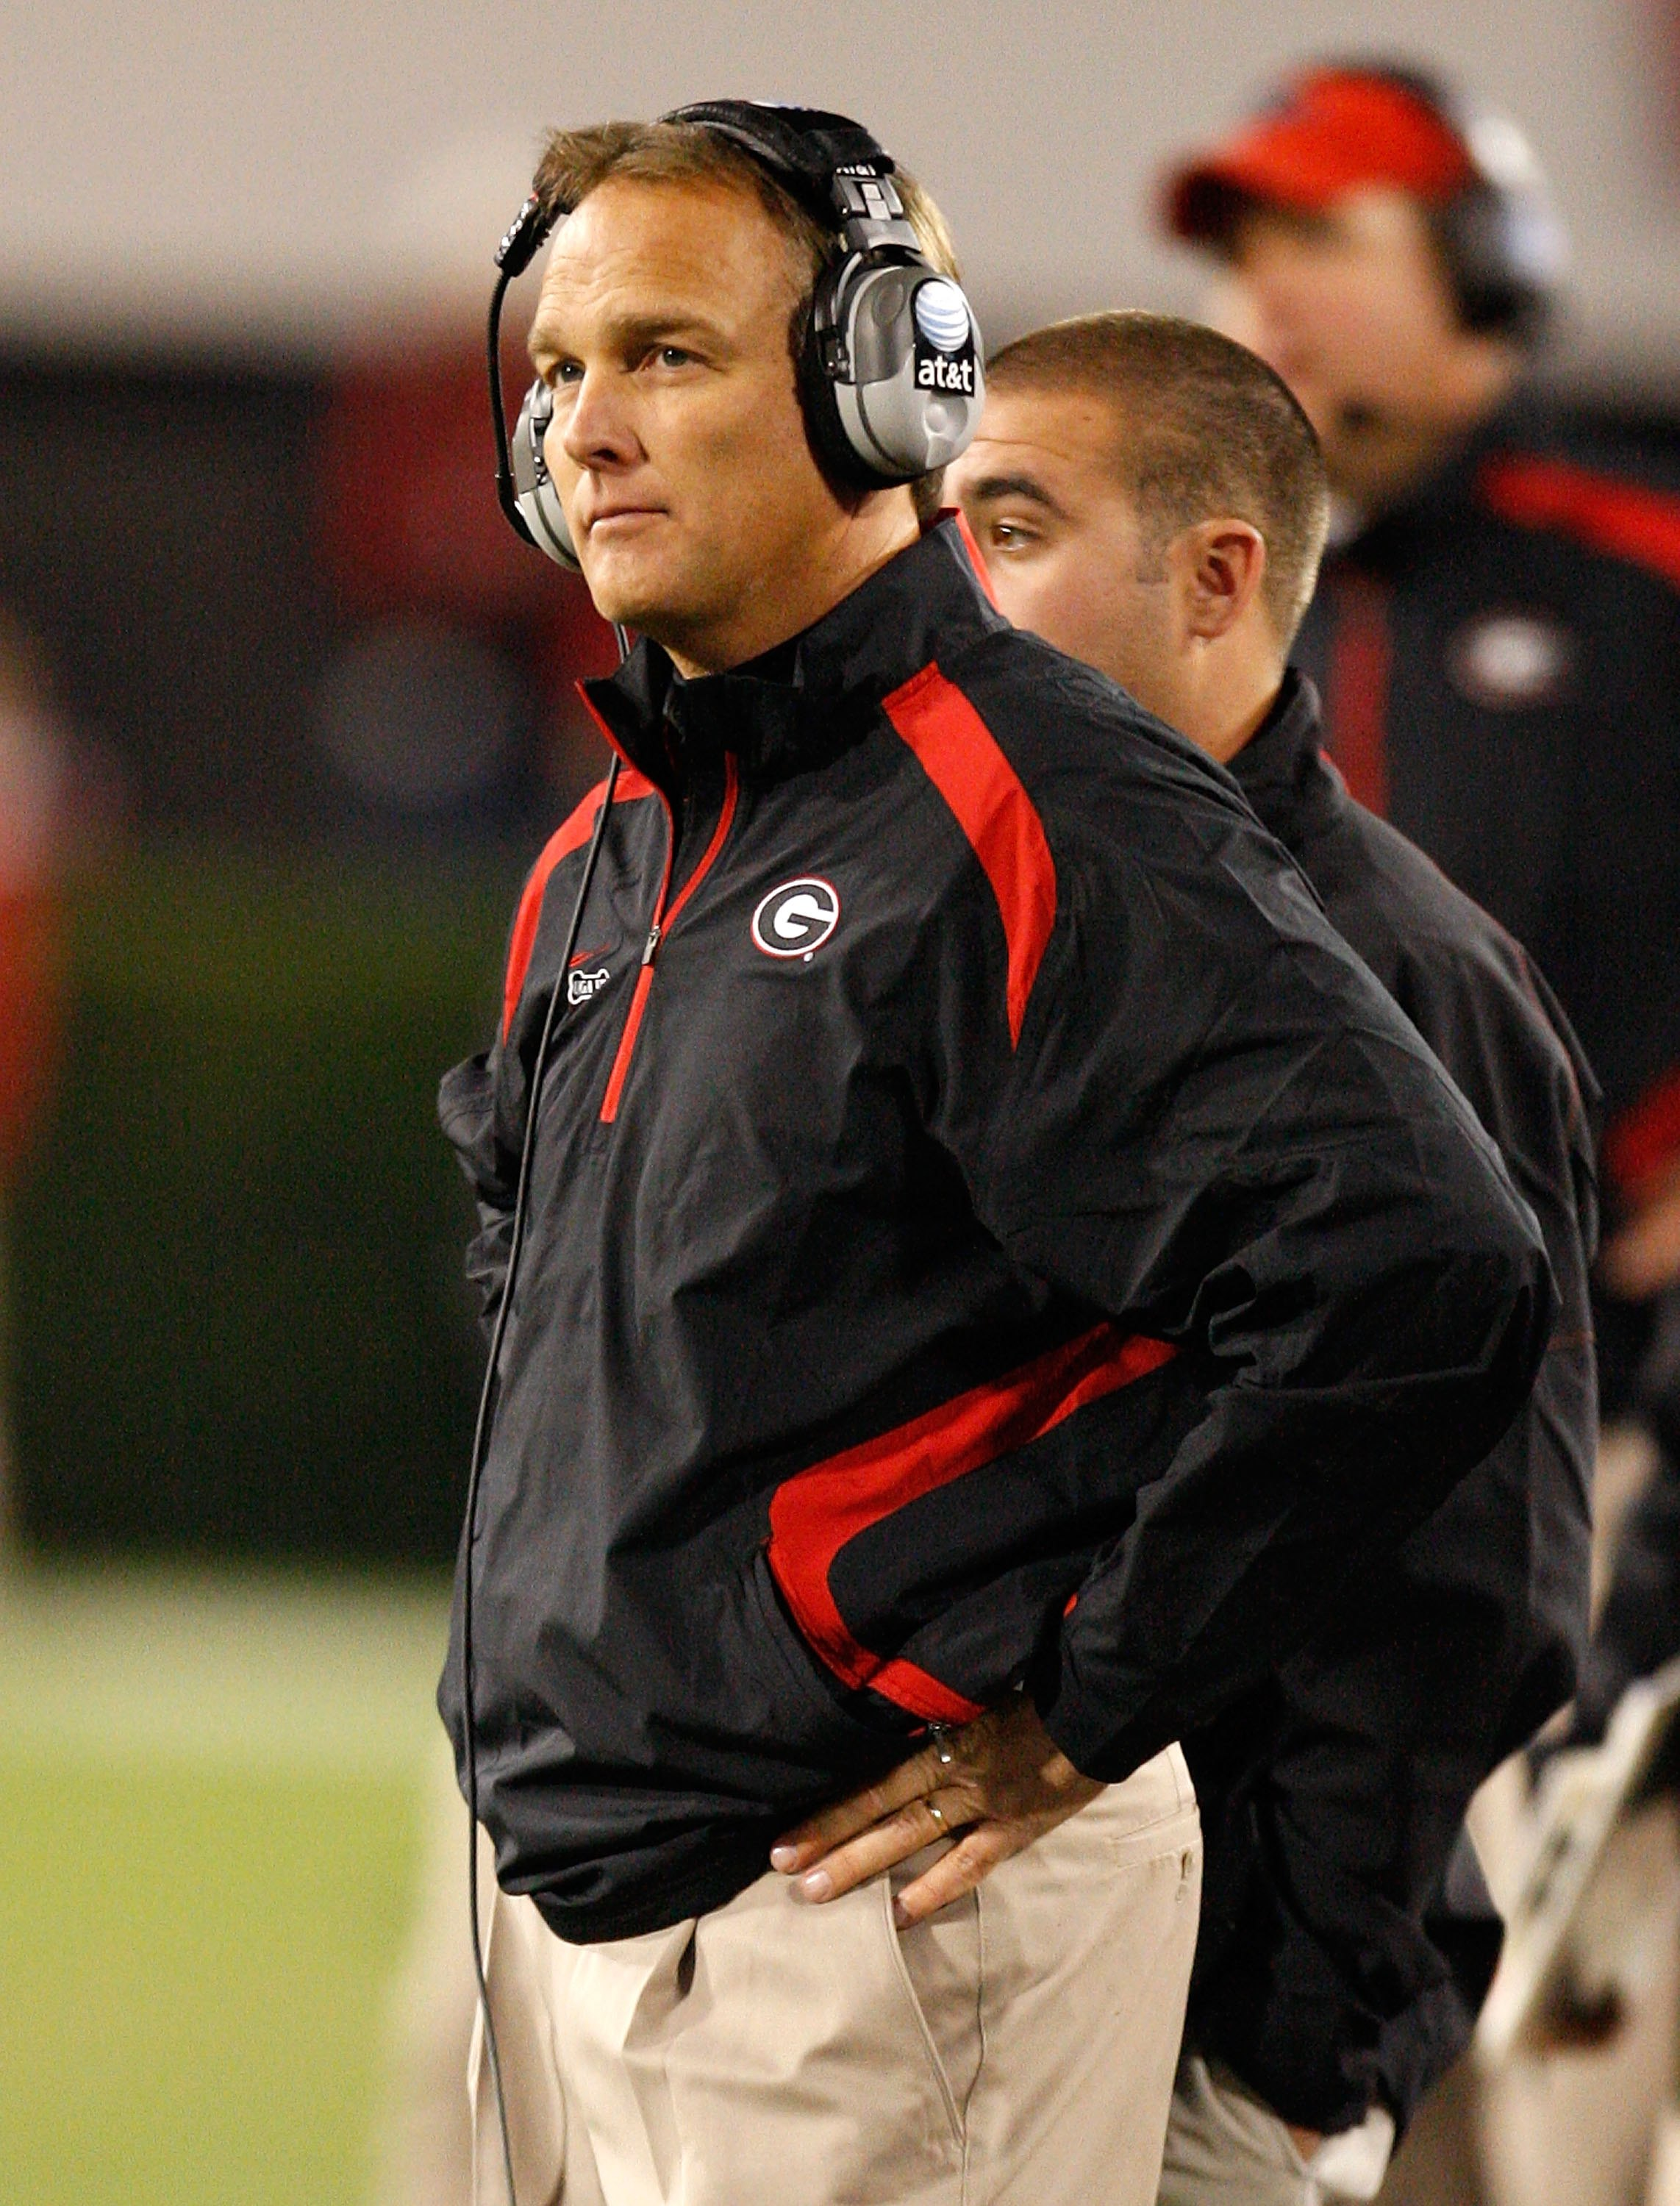 ATHENS, GA - NOVEMBER 21:  Head coach Mark Richt of the Georgia Bulldogs against the Kentucky Wildcats at Sanford Stadium on November 21, 2009 in Athens, Georgia.  (Photo by Kevin C. Cox/Getty Images)